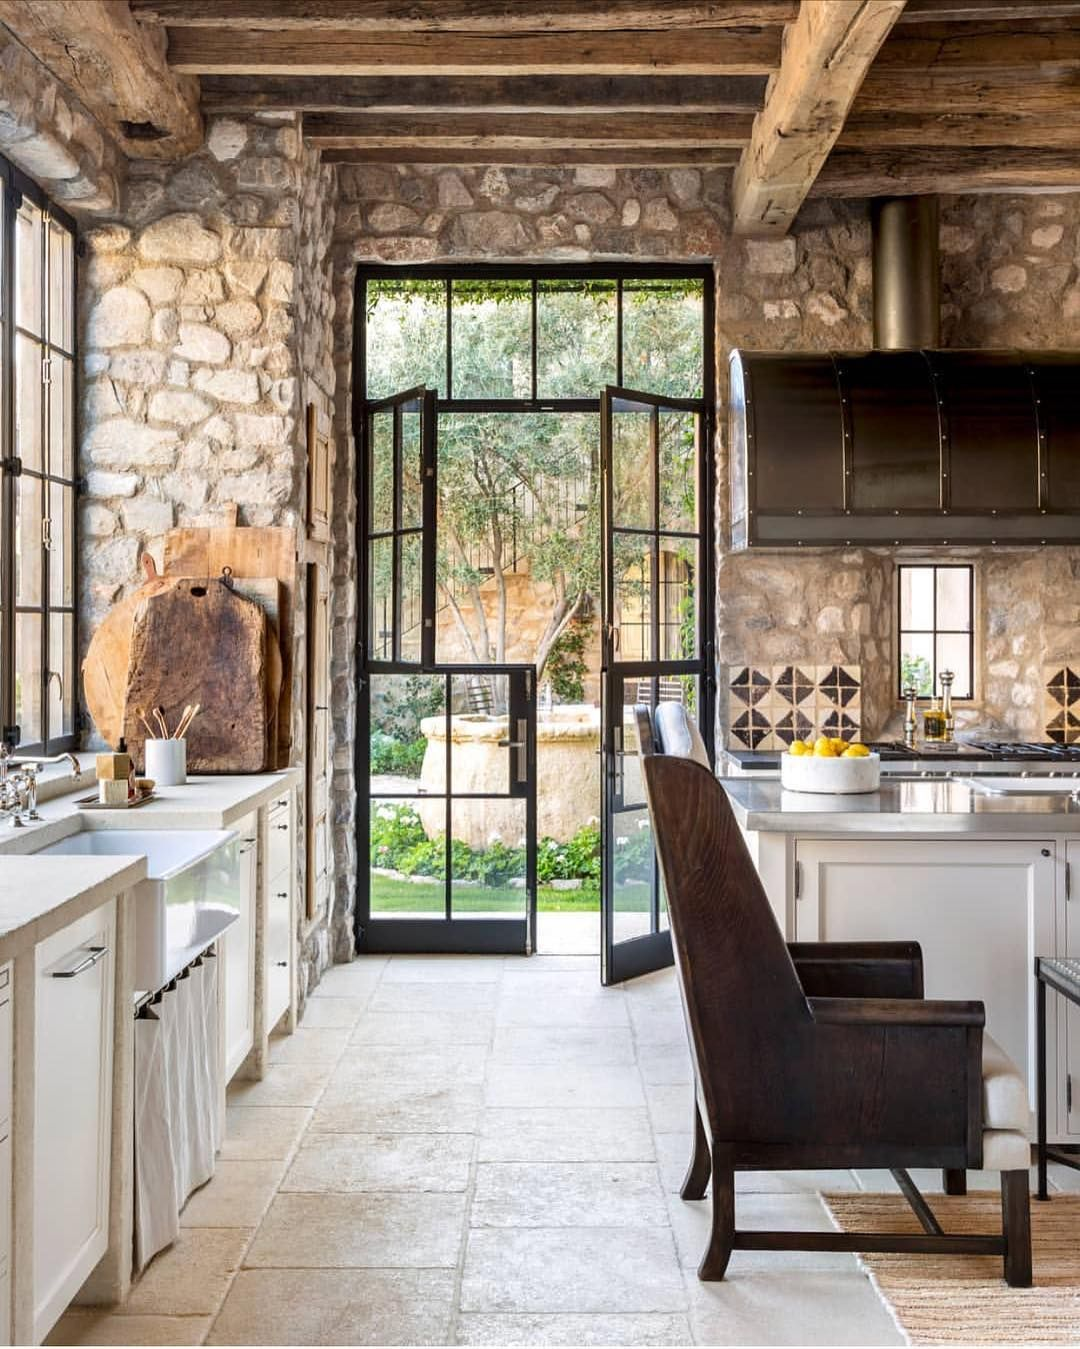 Charming Rustic Kitchen Ideas And Inspirations: Pin By Janet Lohman On Windows, Doors